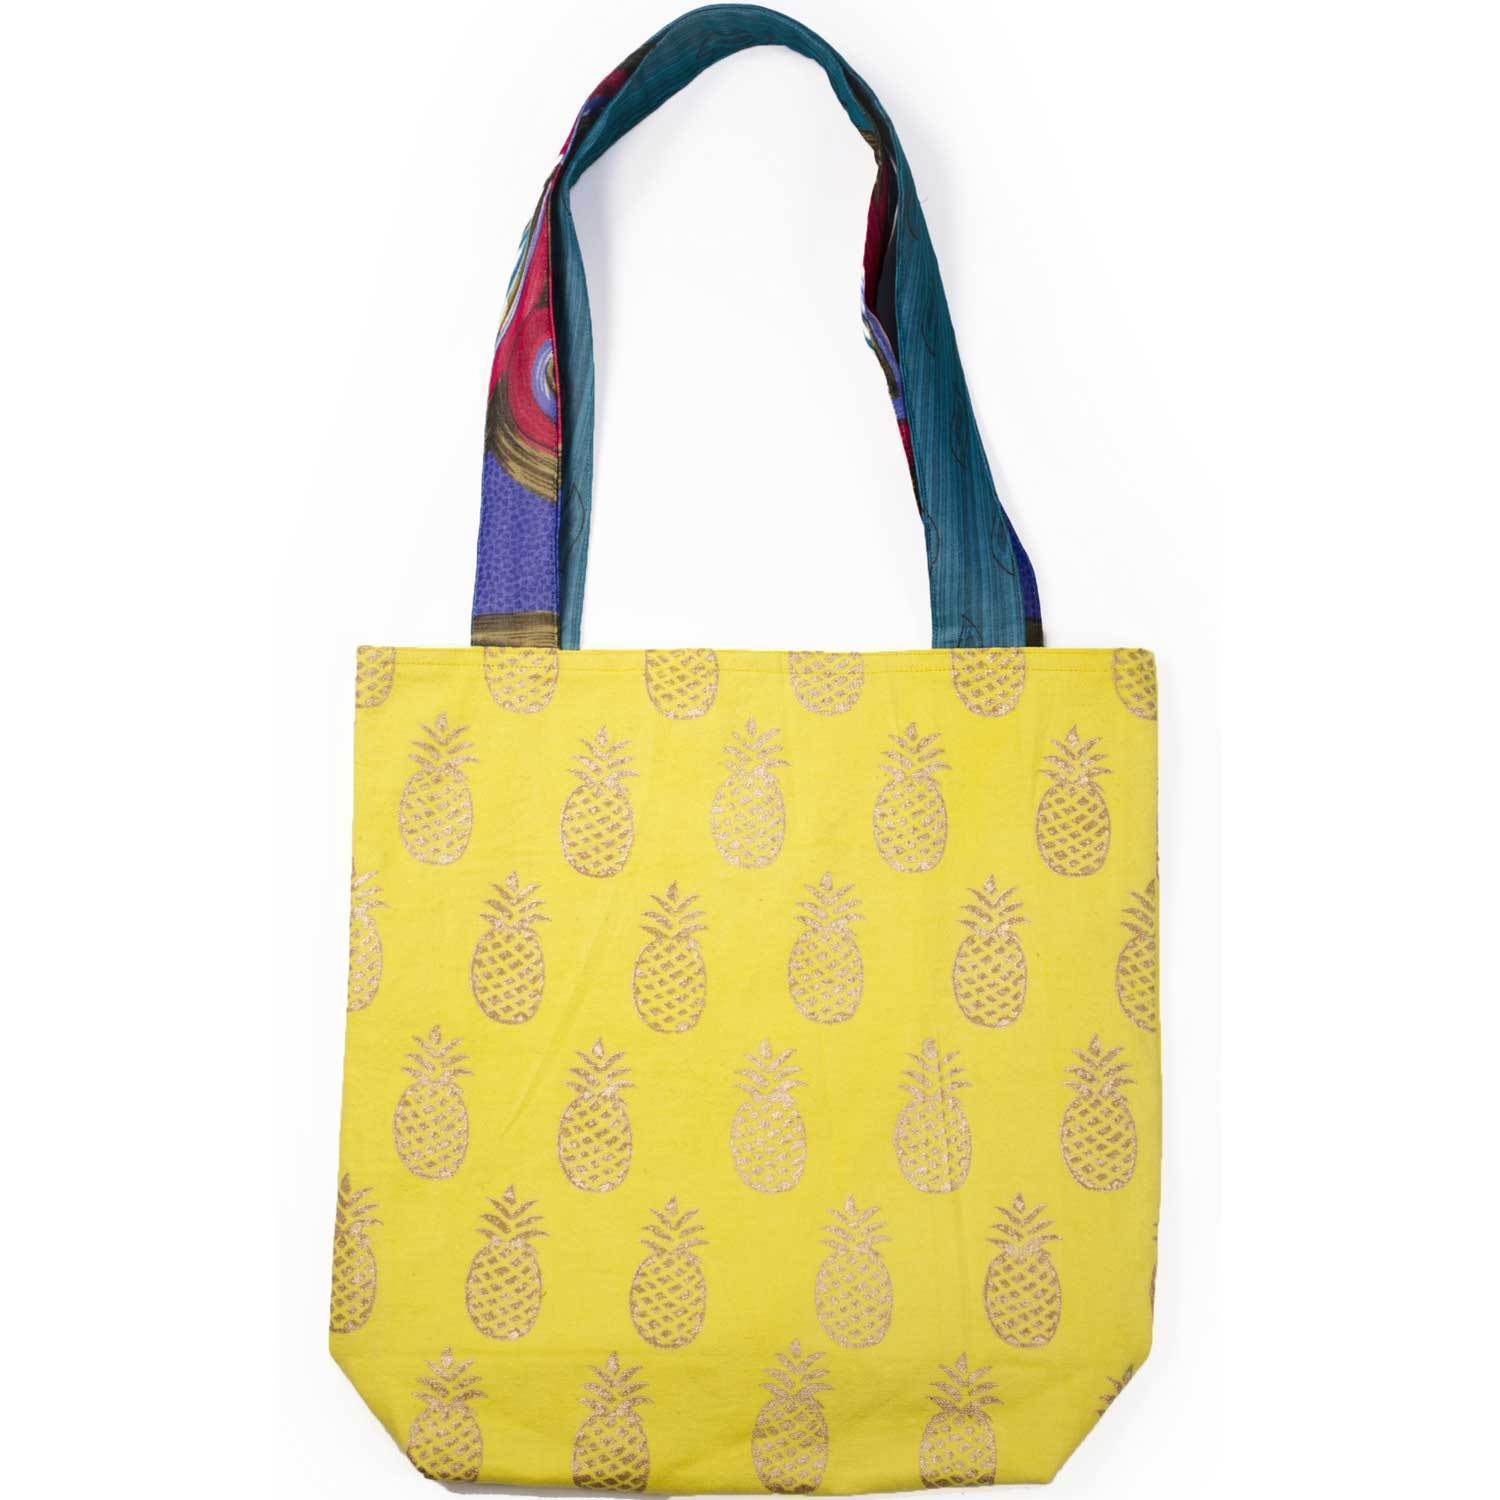 Metallic Pineapple Tote - Vibrant Yellow